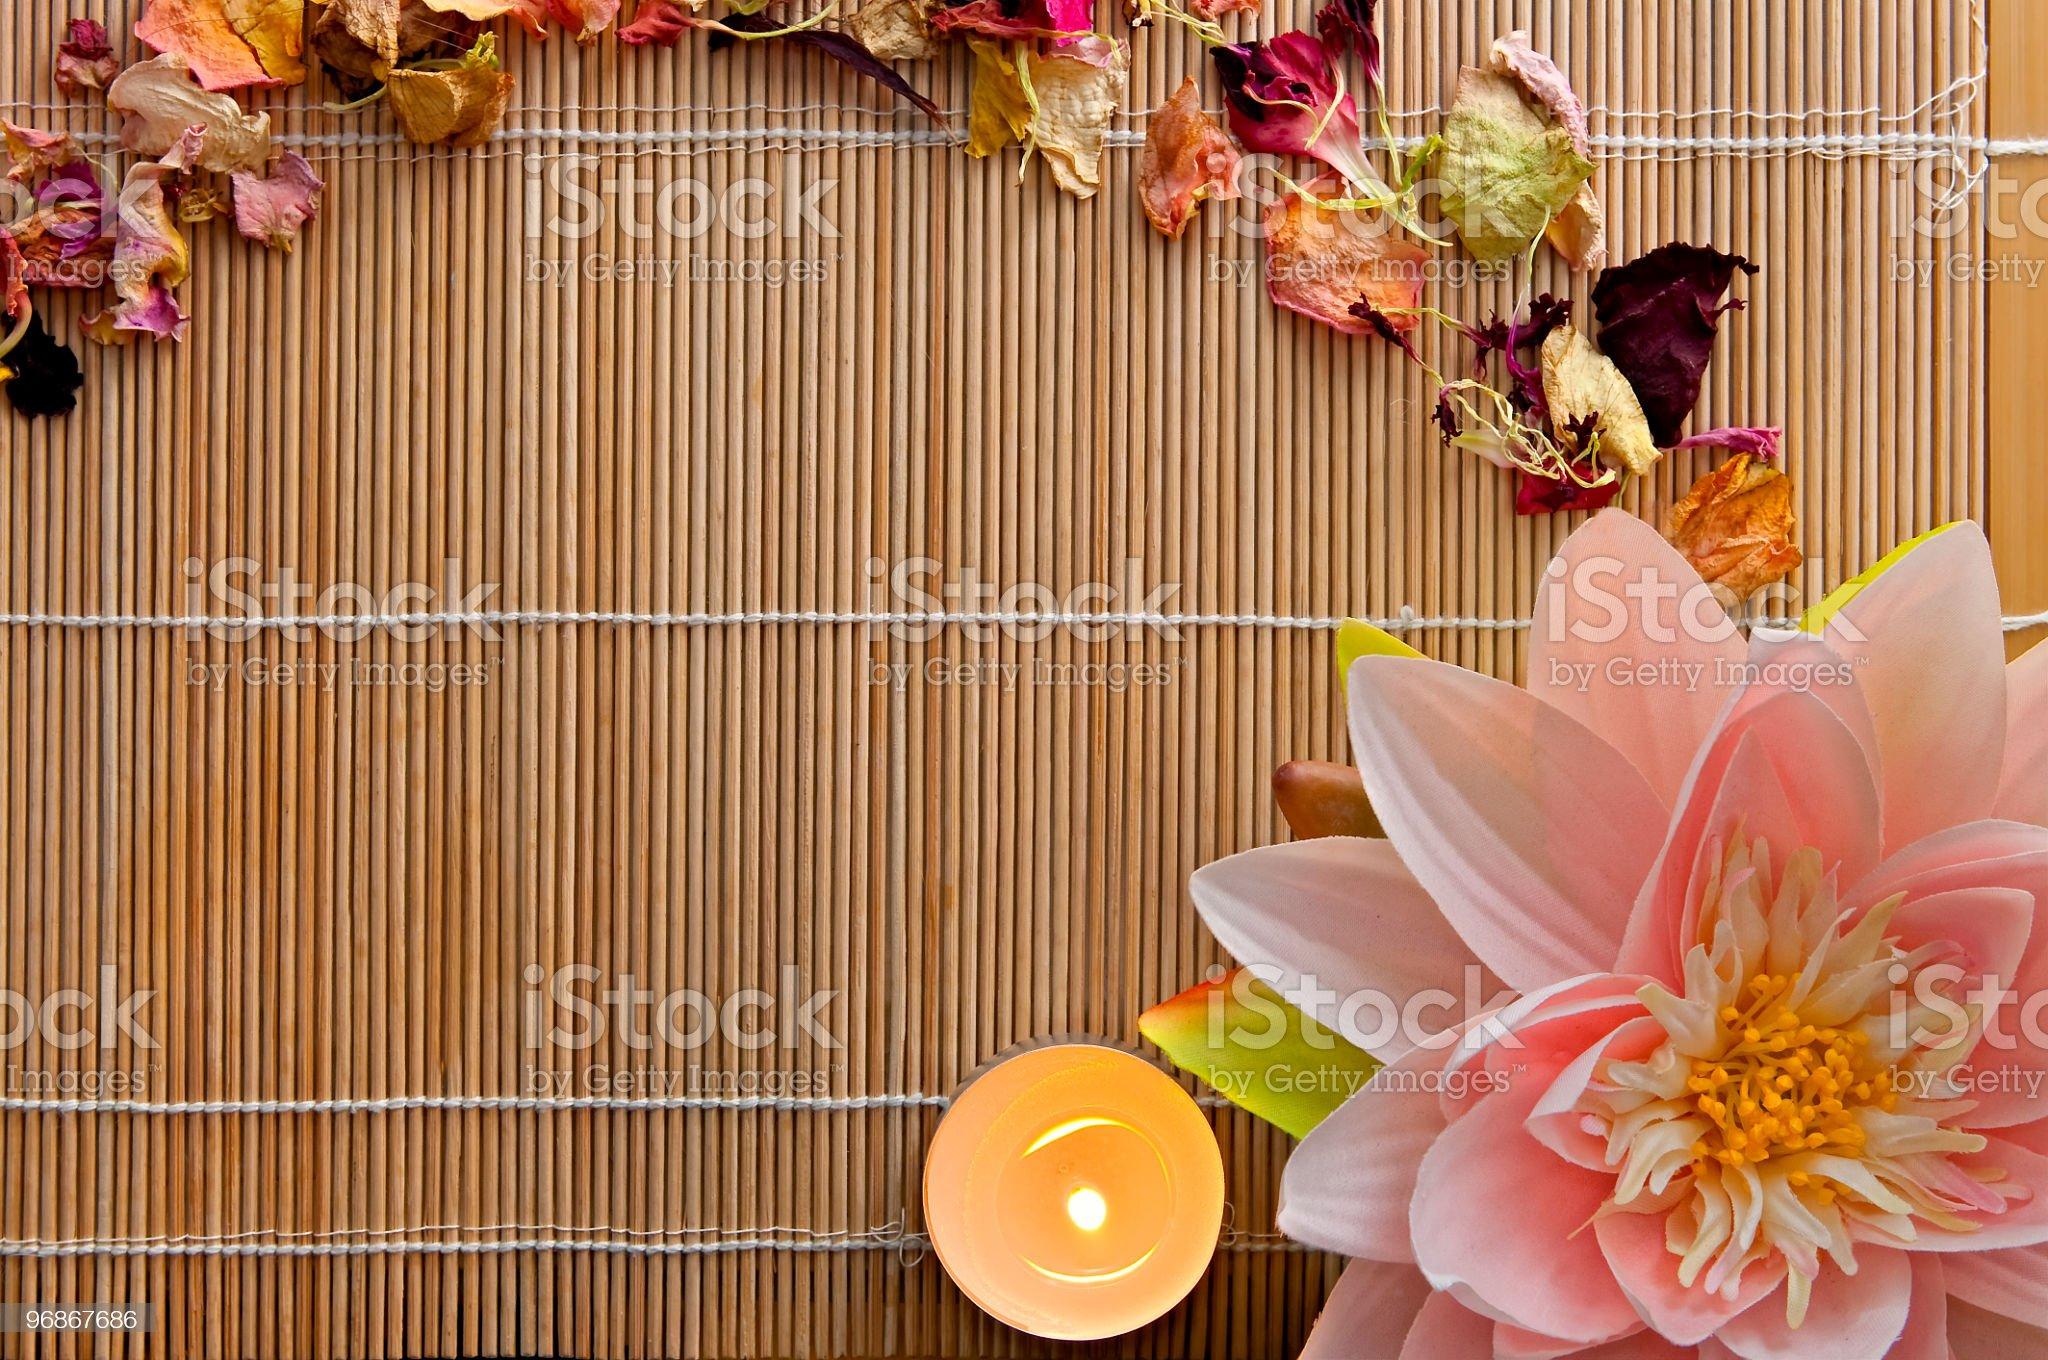 Lotus, Dried Flowers and Candle on Bamboo, with Copyspace royalty-free stock photo